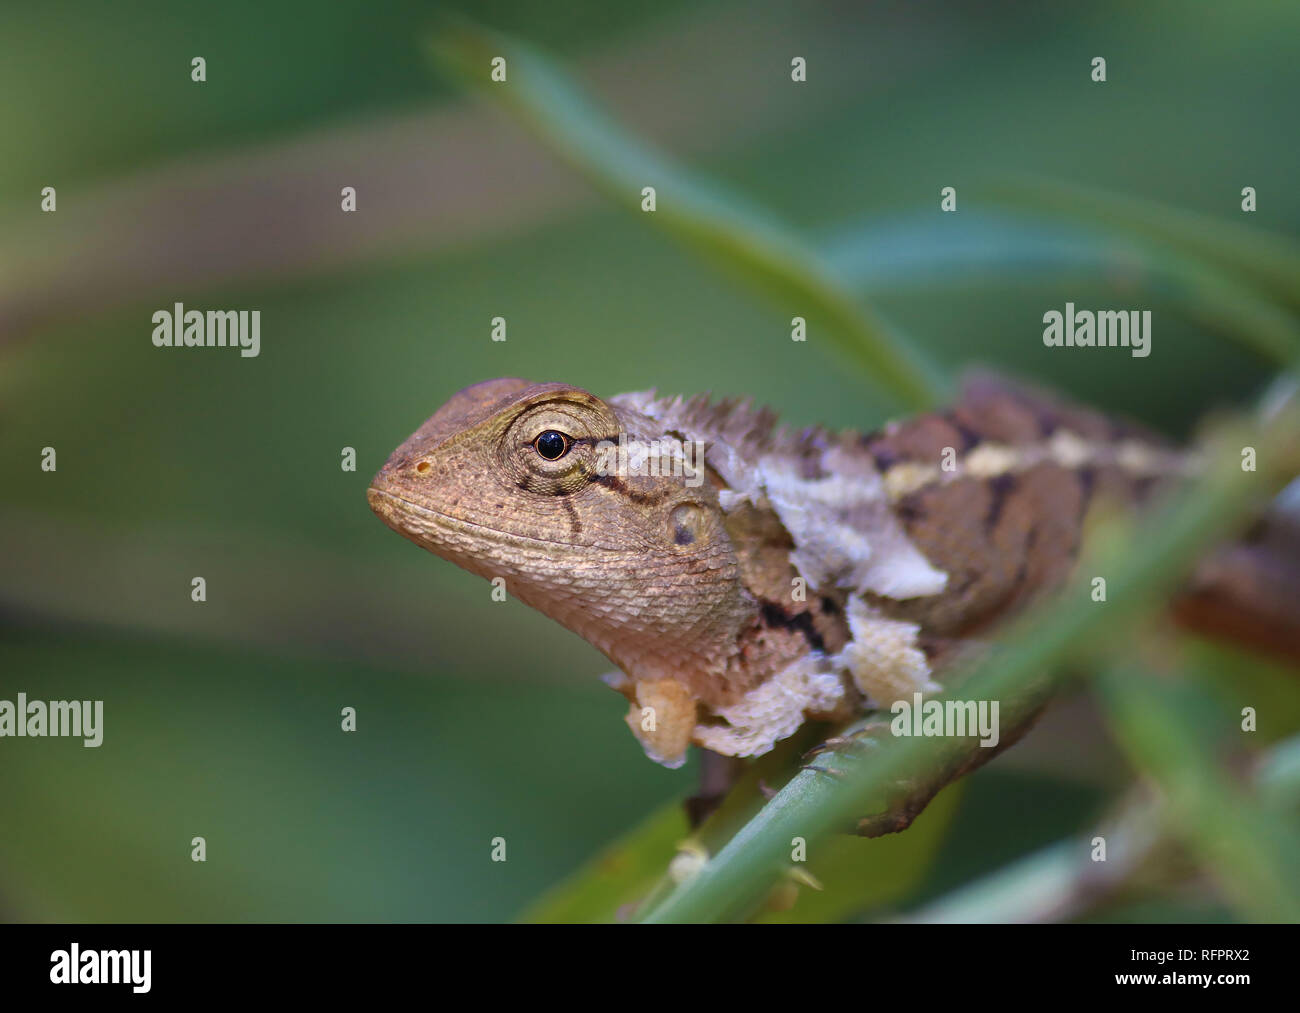 Jardin Oriental femelle Lizard skin shading Photo Stock